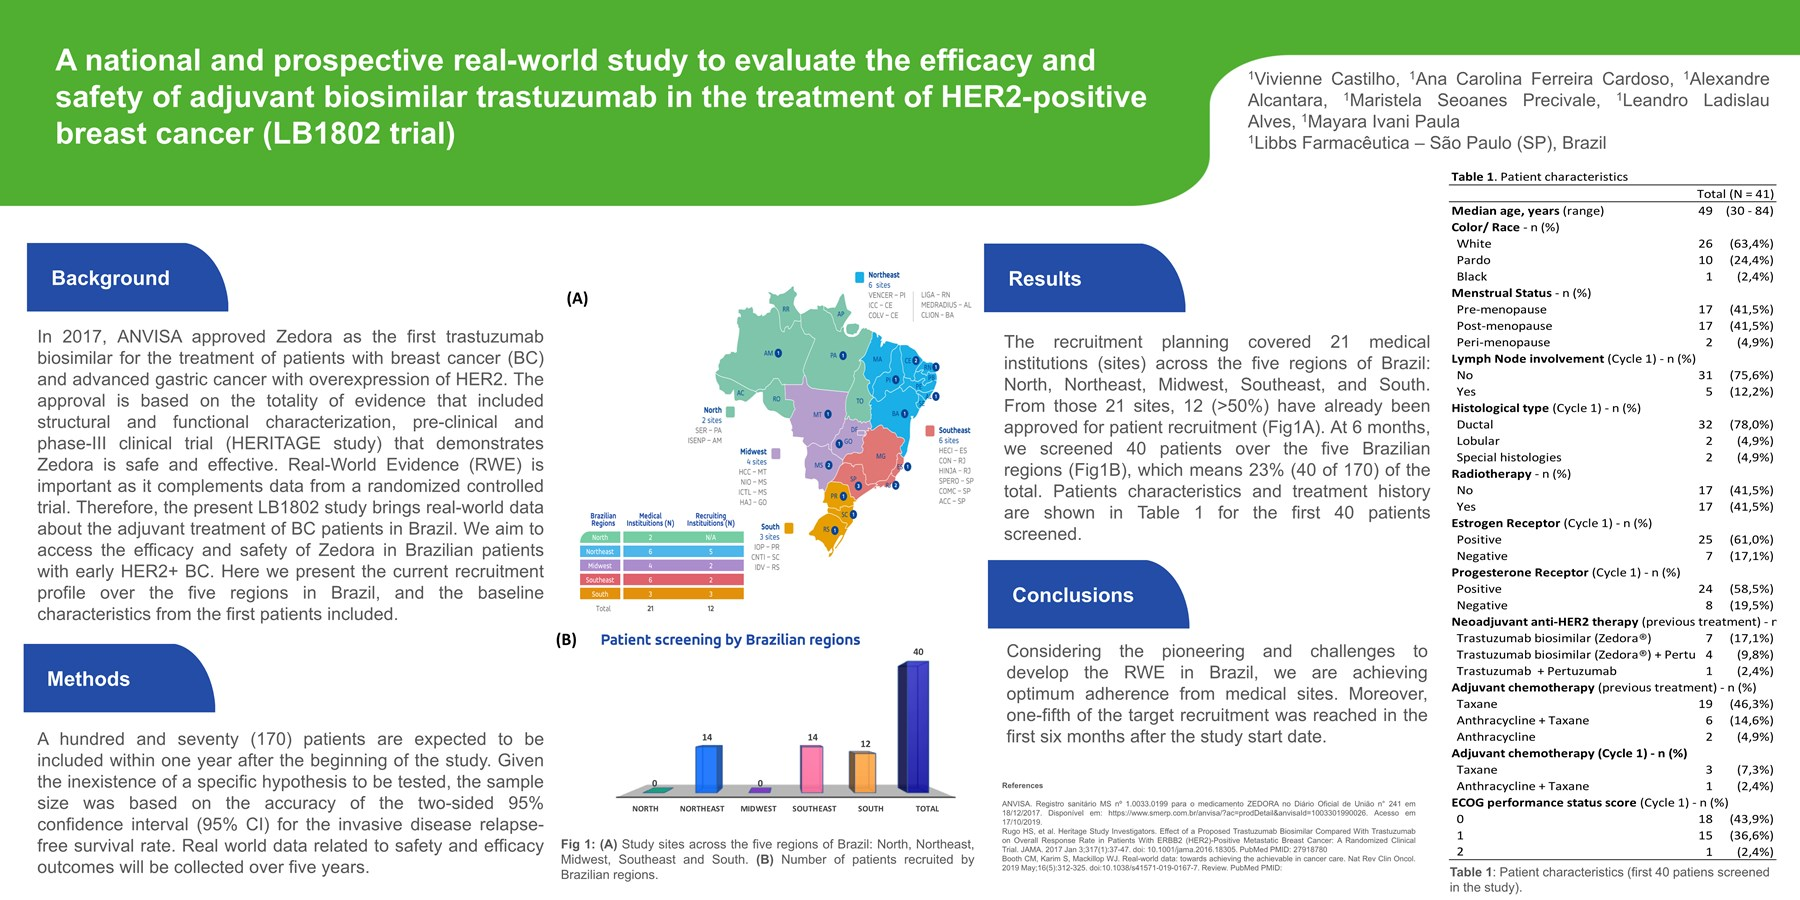 A prospective real-world national study to evaluate the efficacy and safety of adjuvant biosimilar trastuzumab in the treatment of HER2-positive breast cancer